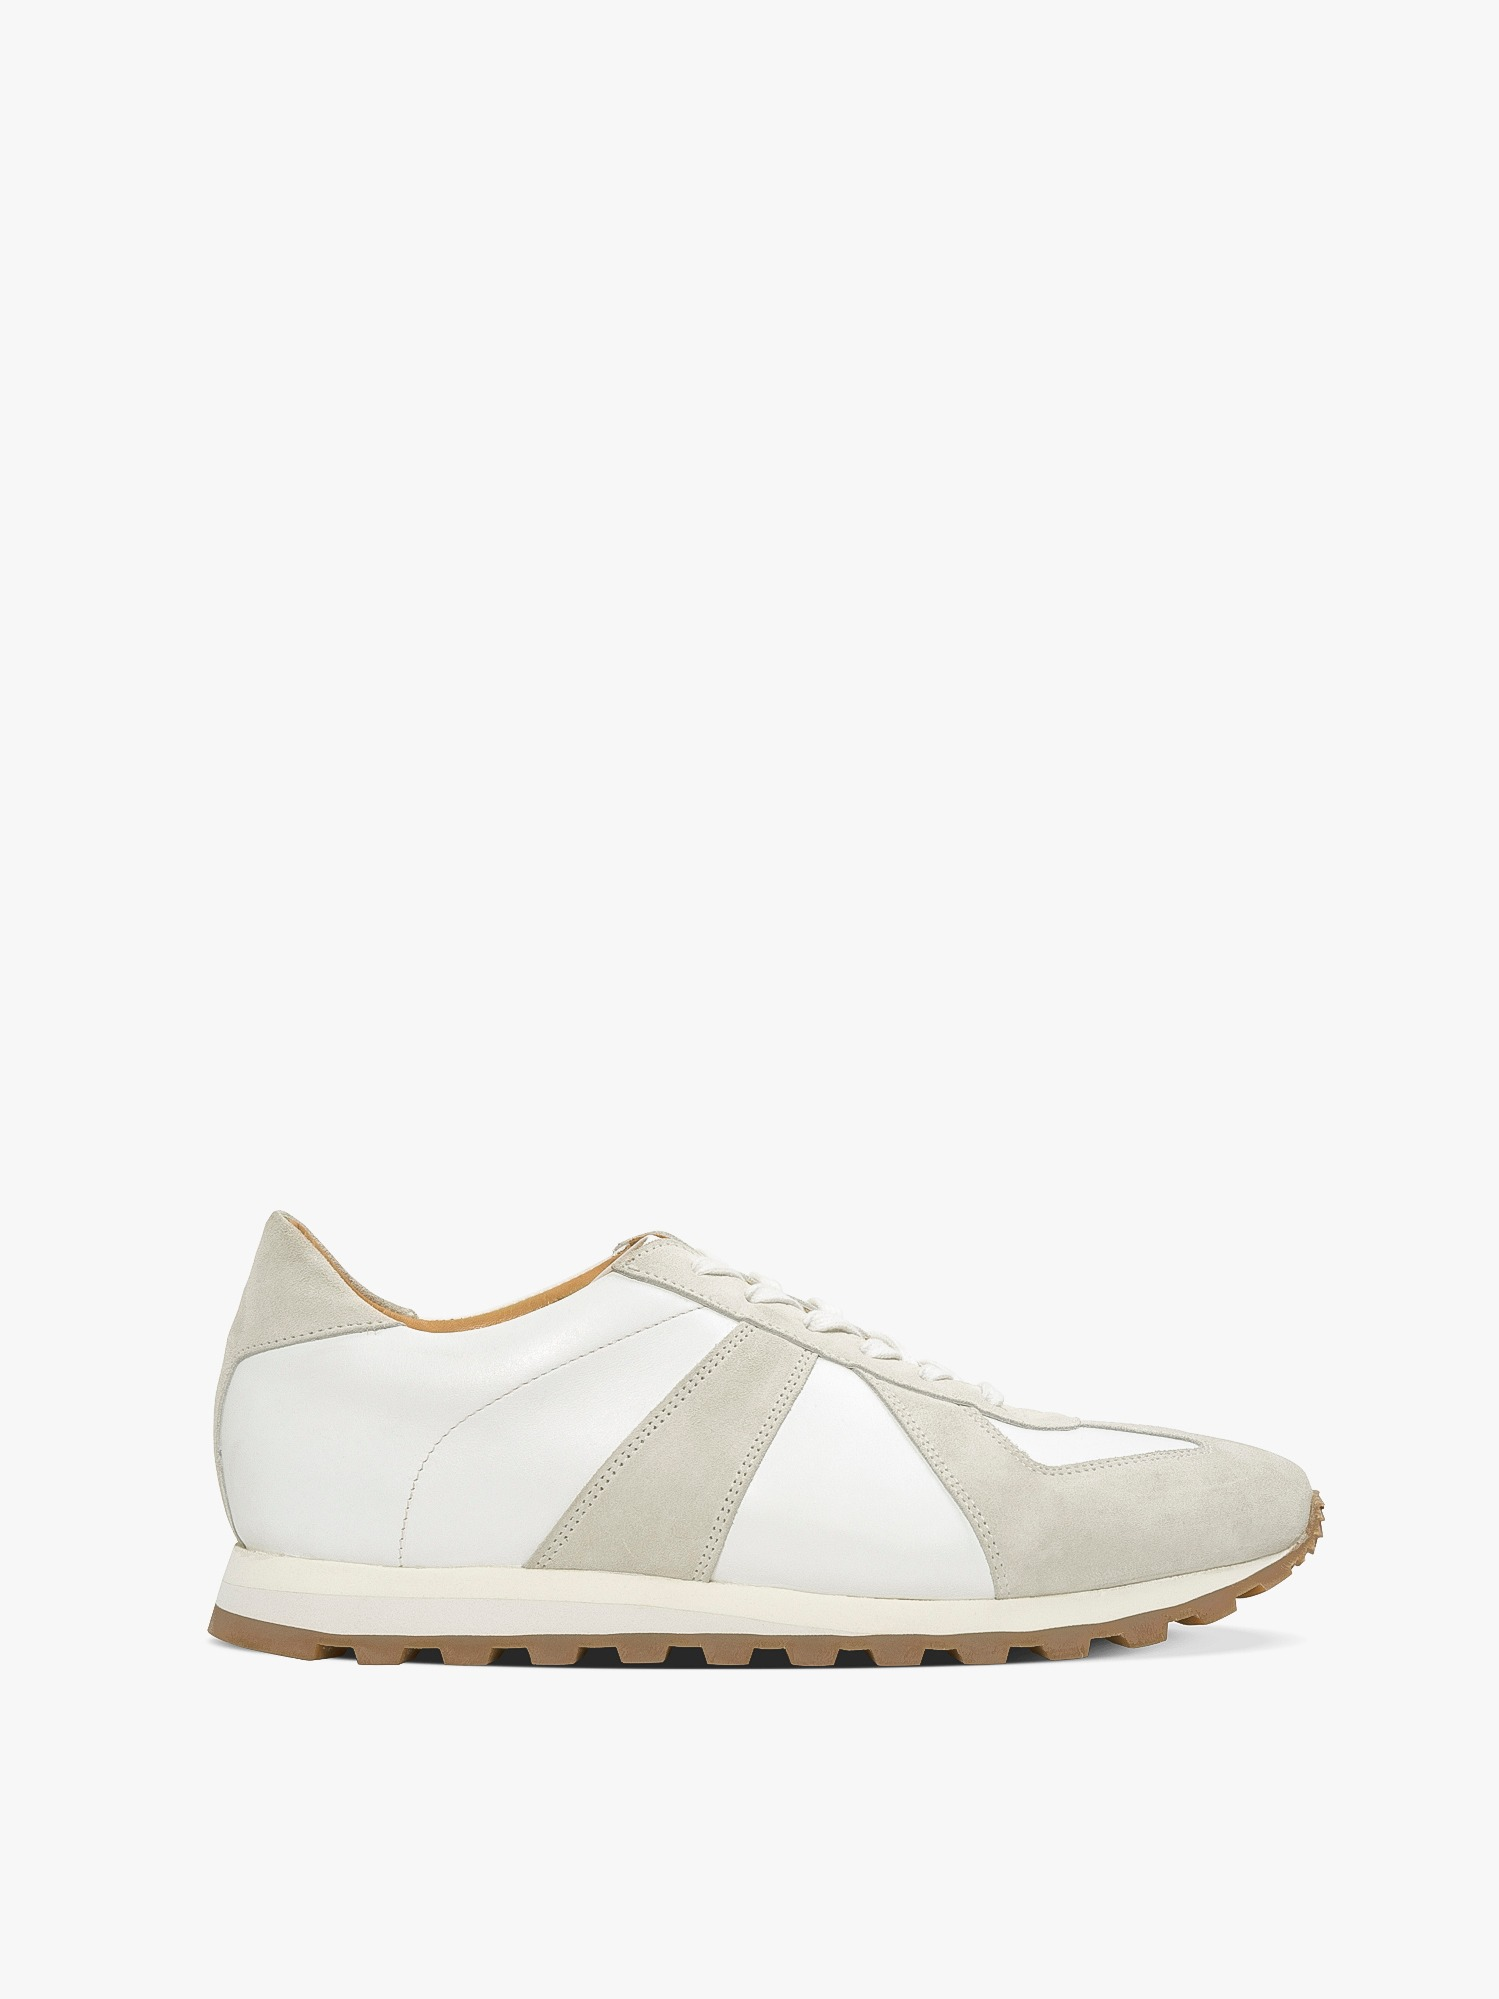 balmoral 07 suede/leather bone white